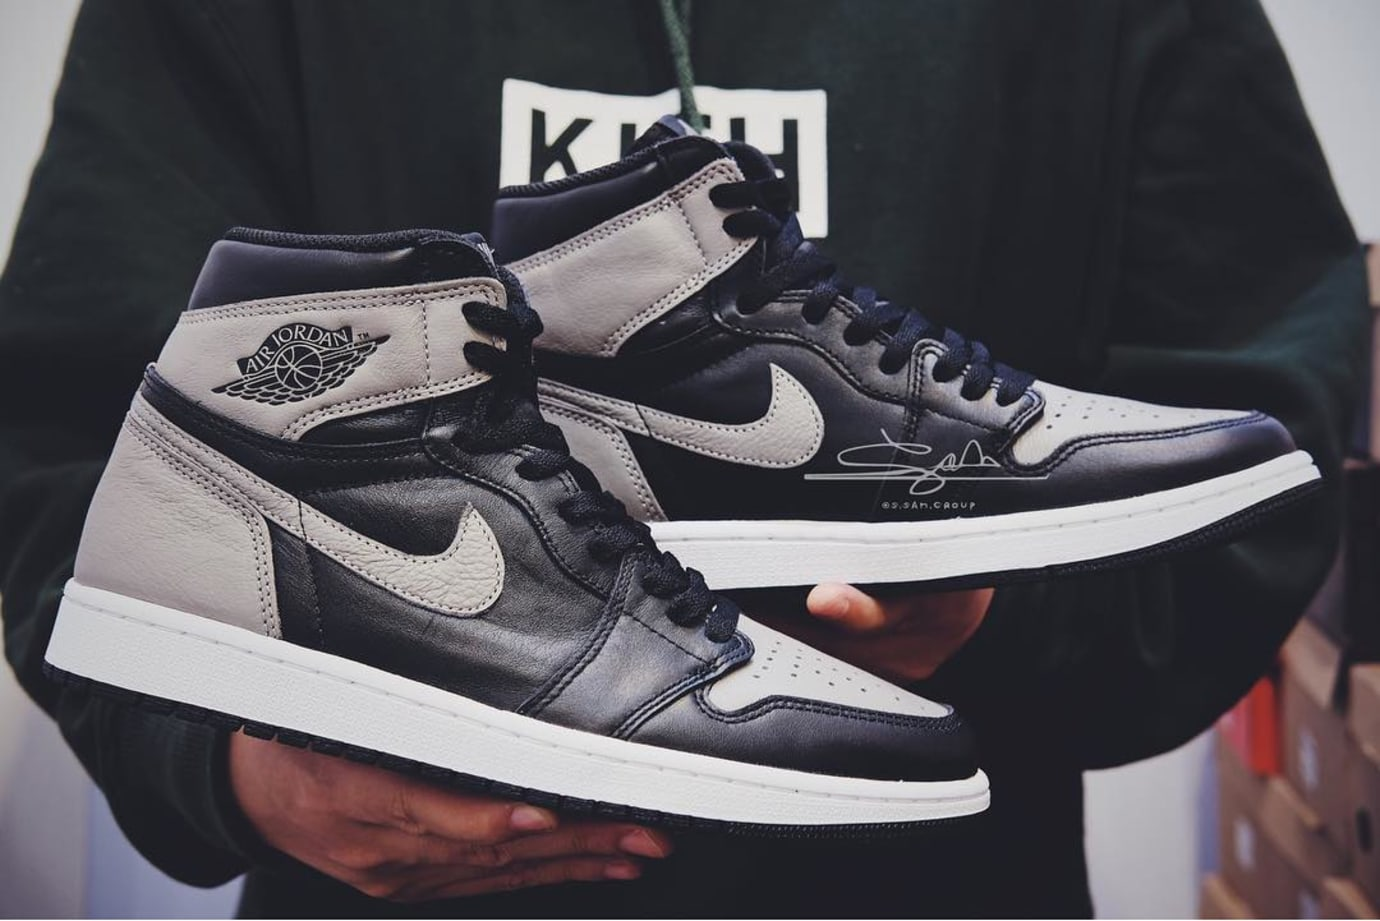 Air Jordan 1 I High OG Shadow 2018 Release Date 555088-013 Side